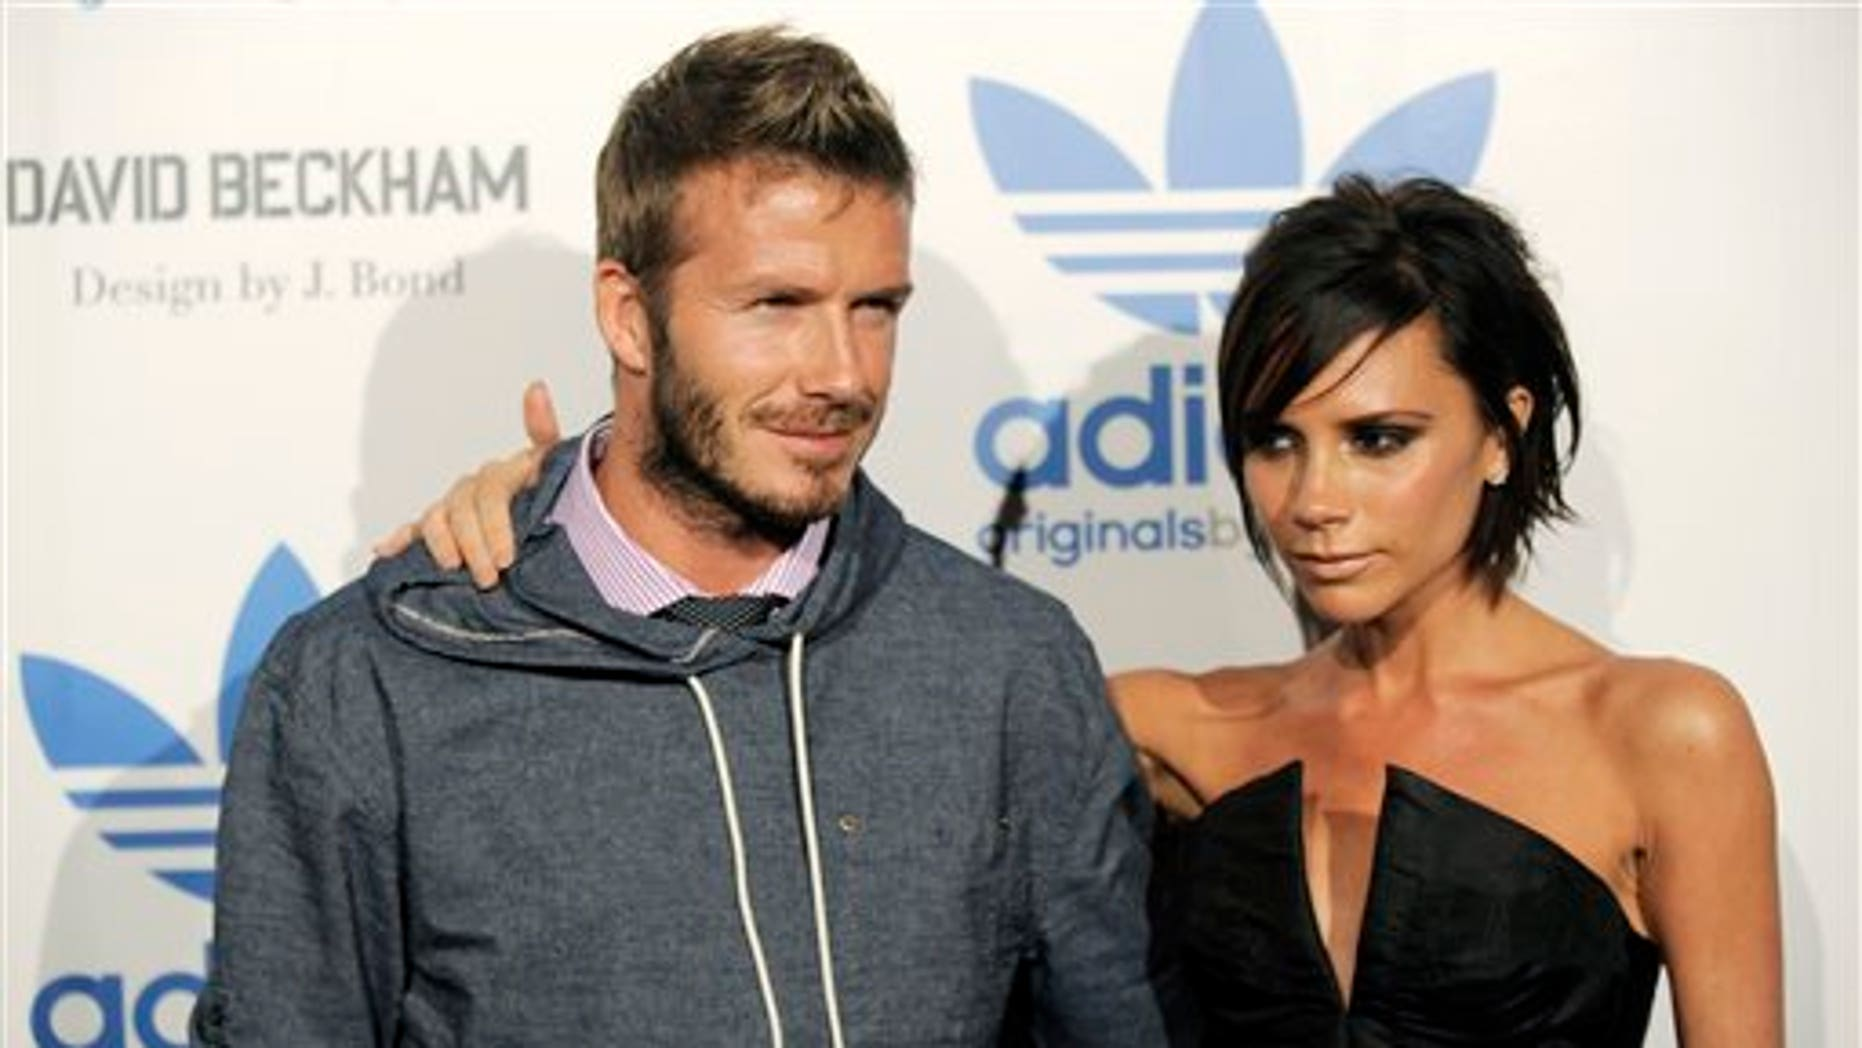 David Beckham and his wife Victoria arrive at an event to celebrate the launch of the Adidas Originals by Originals David Beckham clothing line designed by James Bond, Wednesday, Sept. 30, 2009, in Los Angeles. (AP Photo/Chris Pizzello)